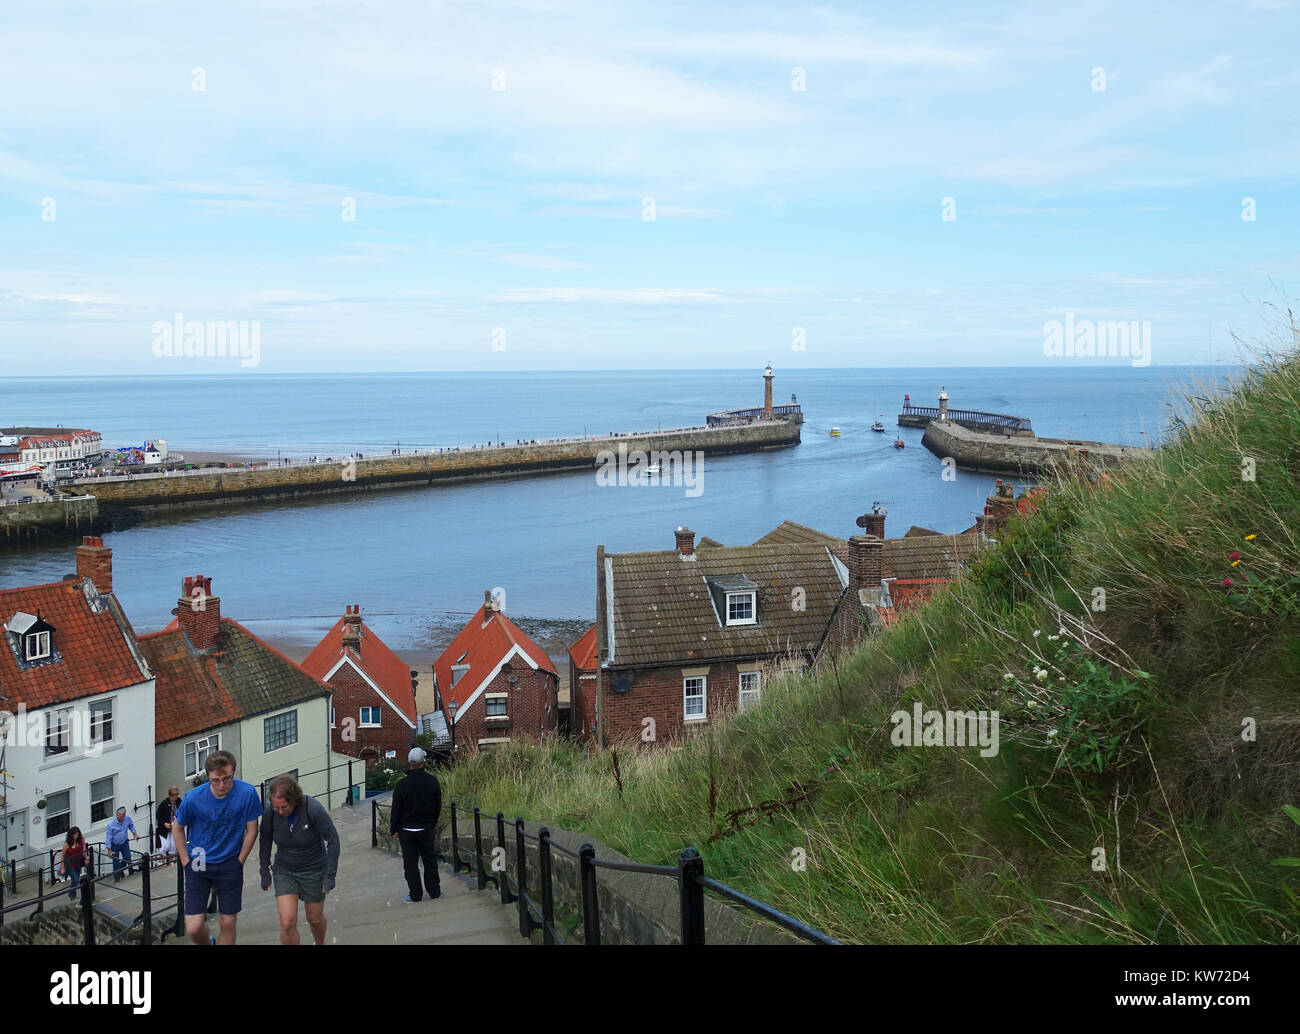 People climbing the 199 steps to Abbey and church against backdrop of Whitby Harbour. - Stock Image